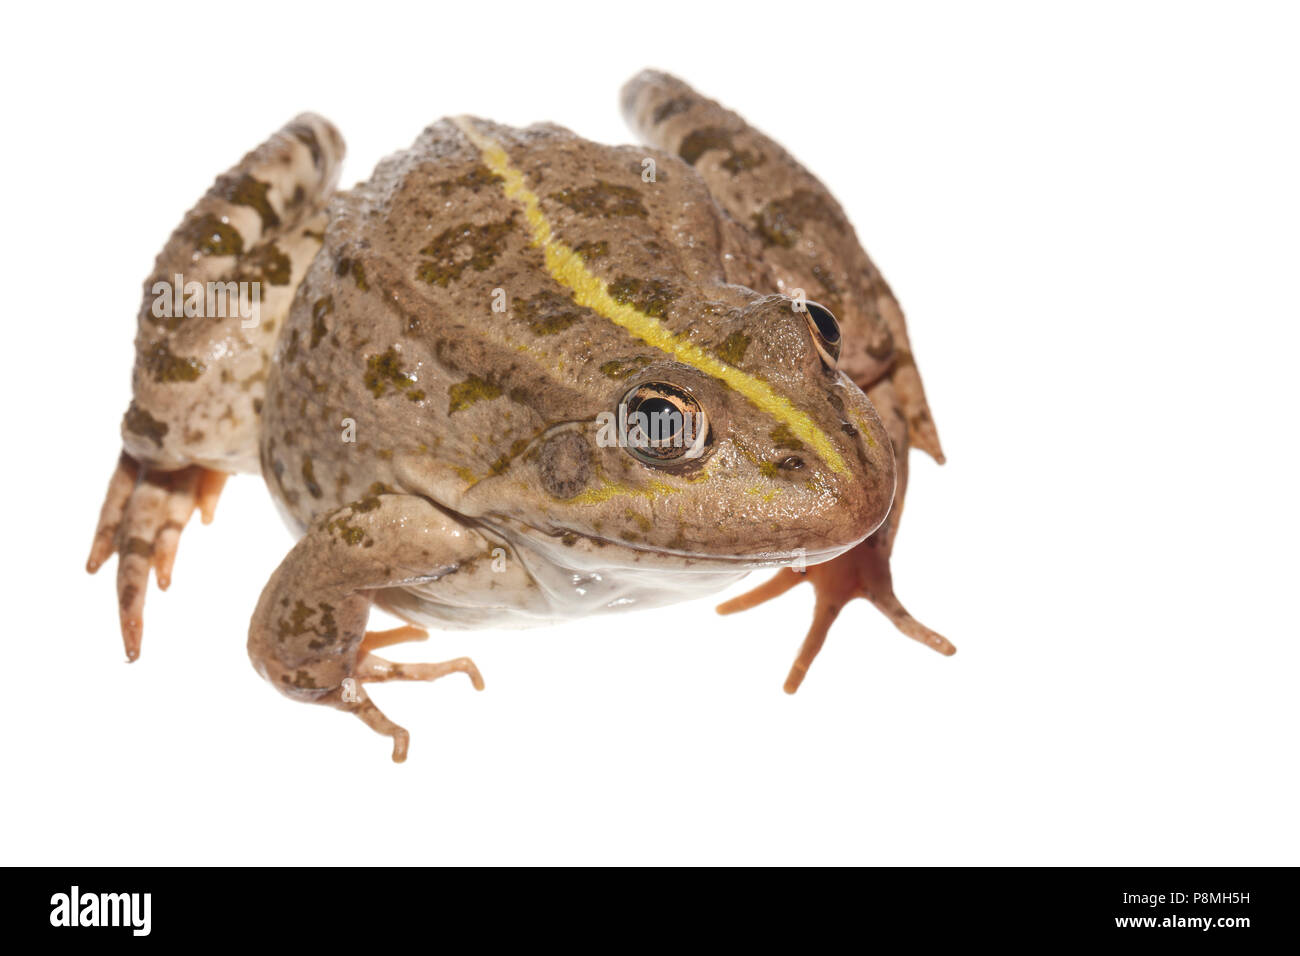 marsh frog isolated against a white background - Stock Image